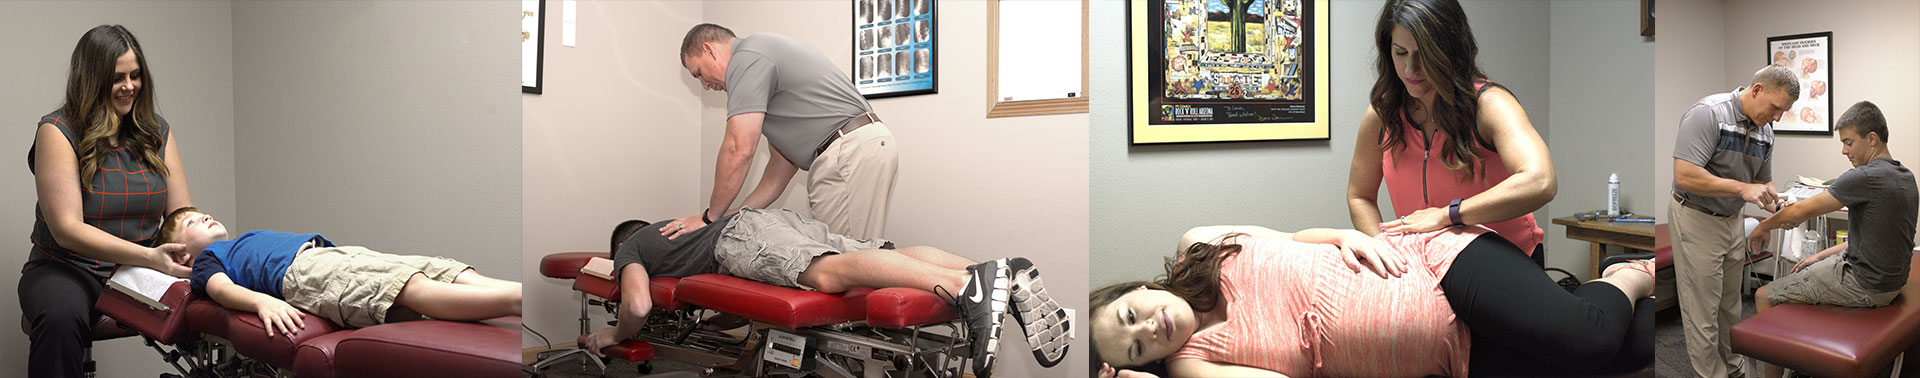 About us drees family sports chiropractic acupuncture for The family room acupuncture